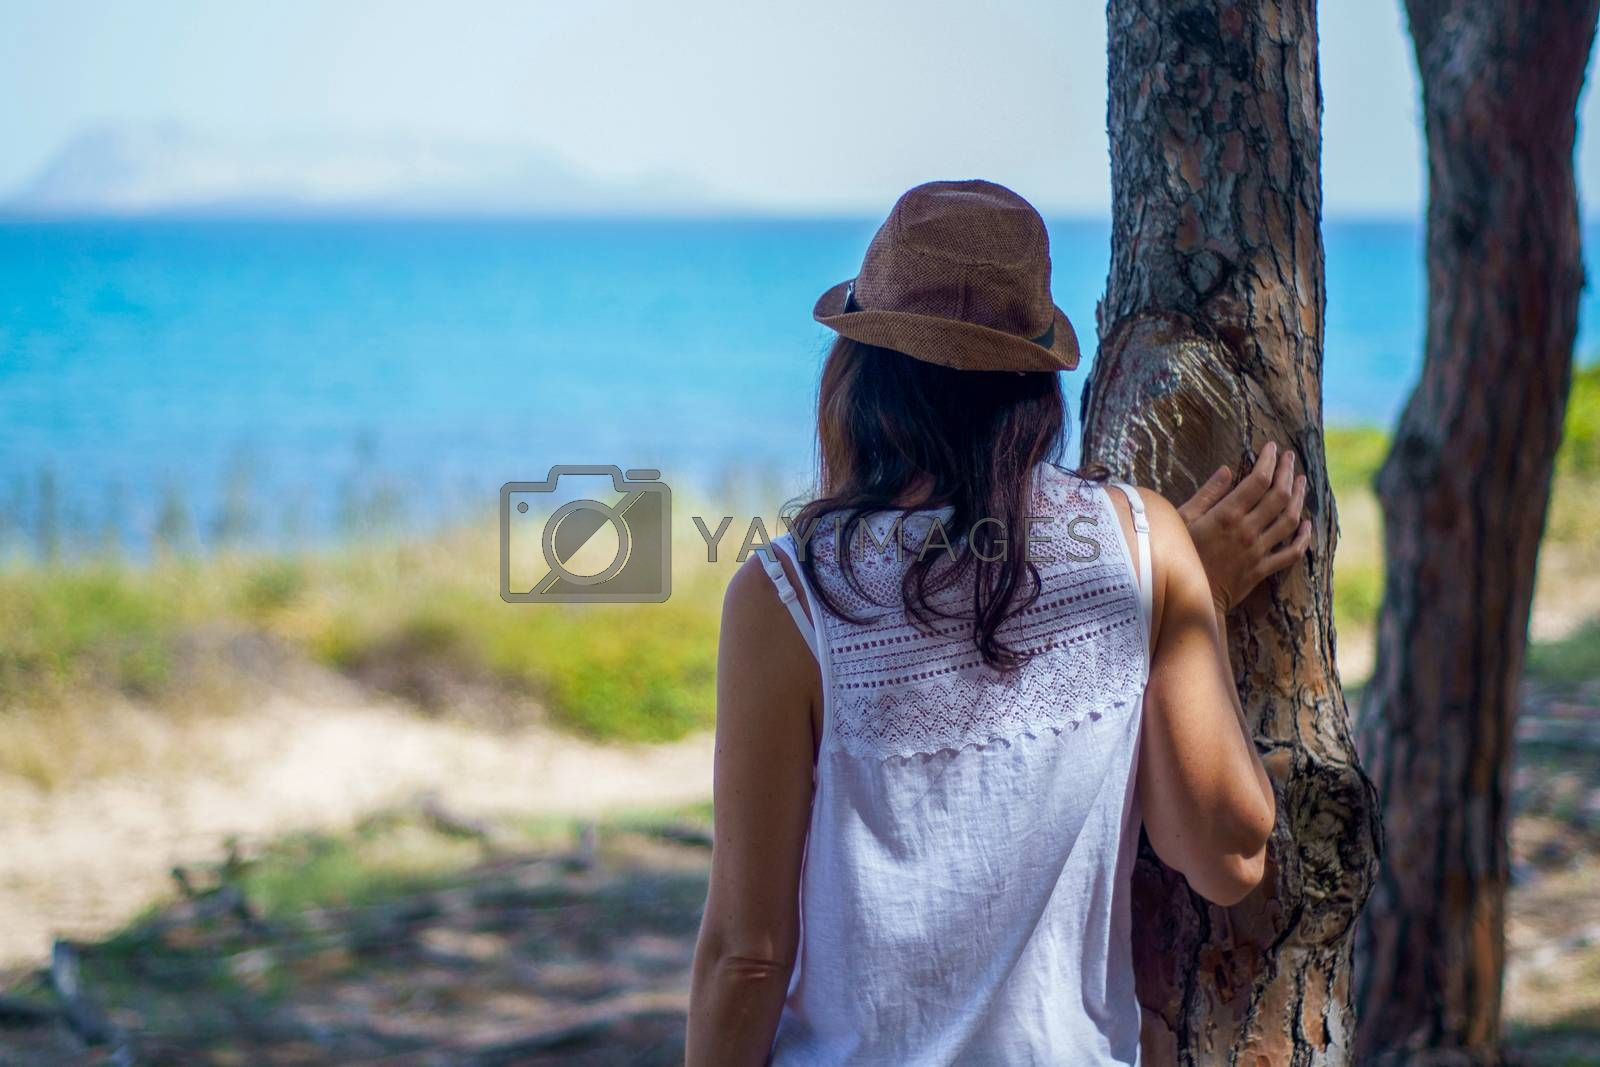 Pensive young woman with long hair and hat, seen from behind, looks at the sea leaning against a tree in a pine forest